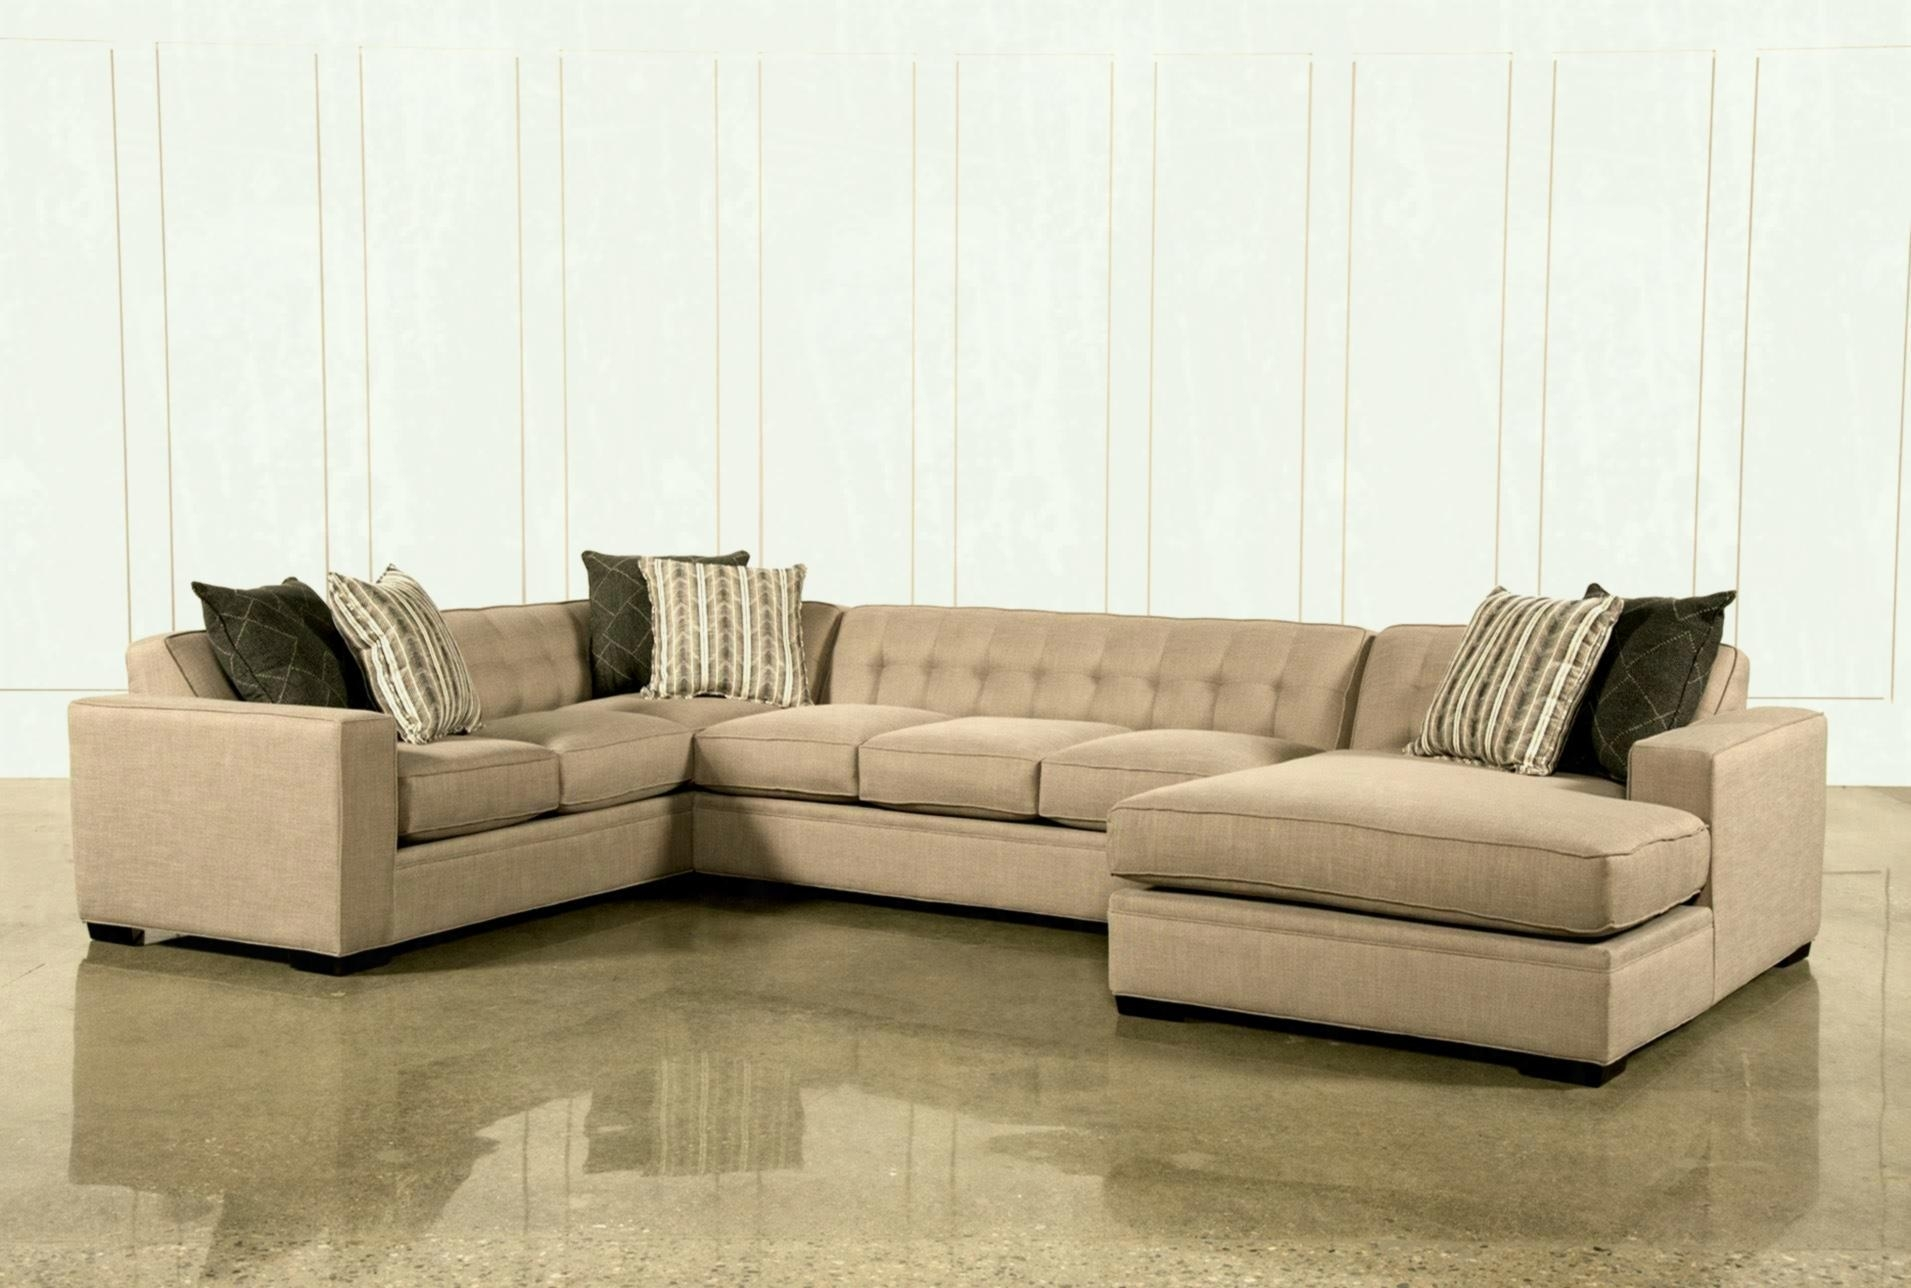 Living Spaces Sectional – Tidex With Sierra Down 3 Piece Sectionals With Laf Chaise (Image 17 of 25)